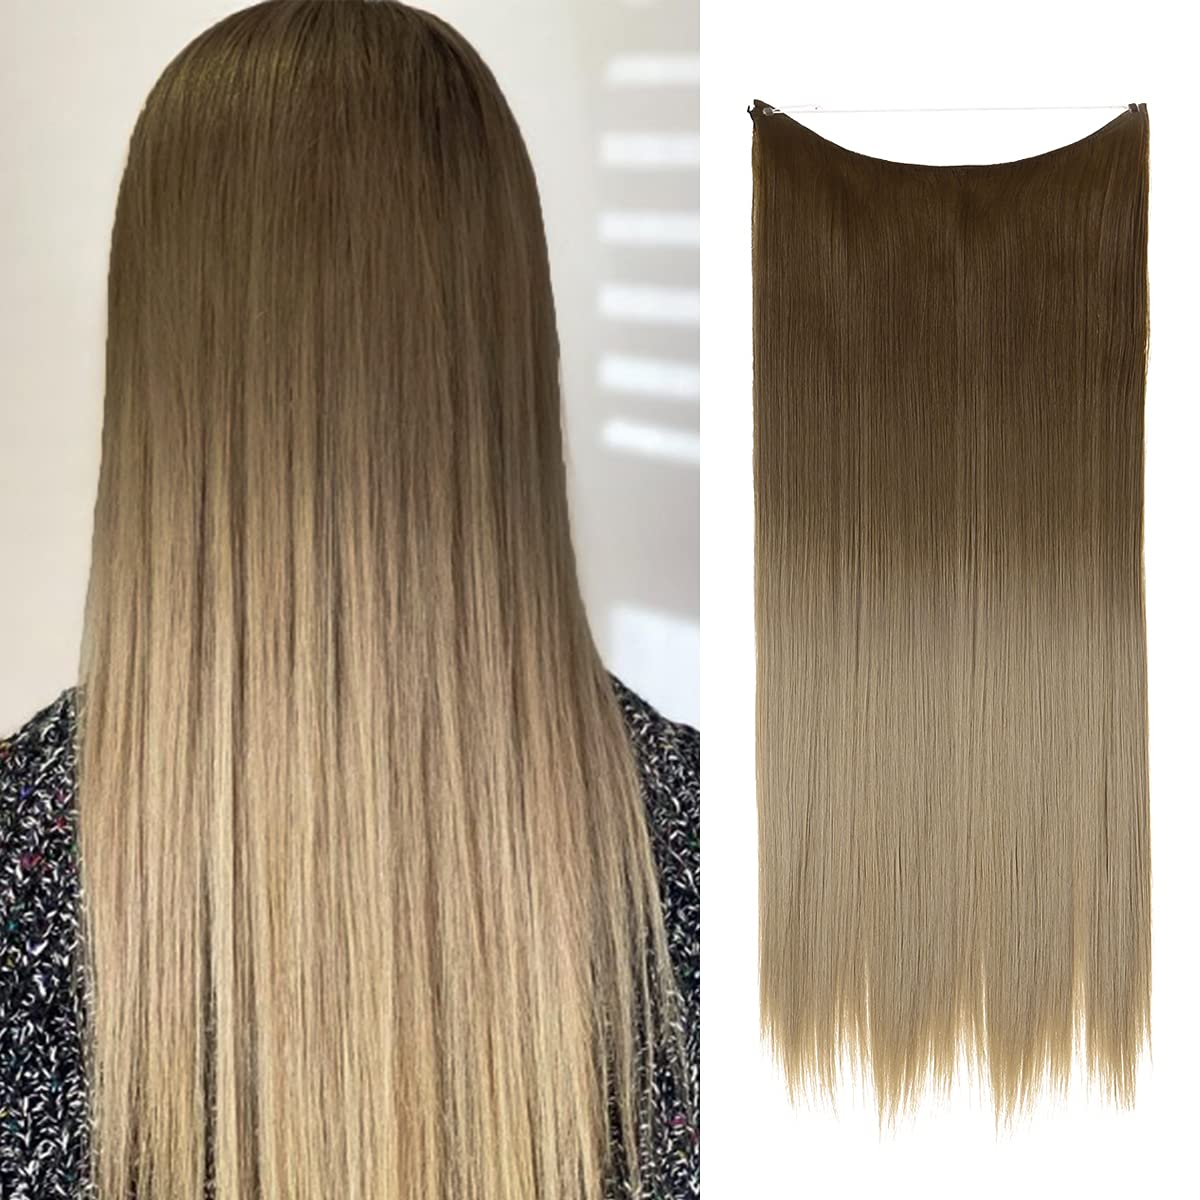 SARLA Ombre Halo Hair Extensions Brown Short to Ash Max 67% Nashville-Davidson Mall OFF Blonde Strai